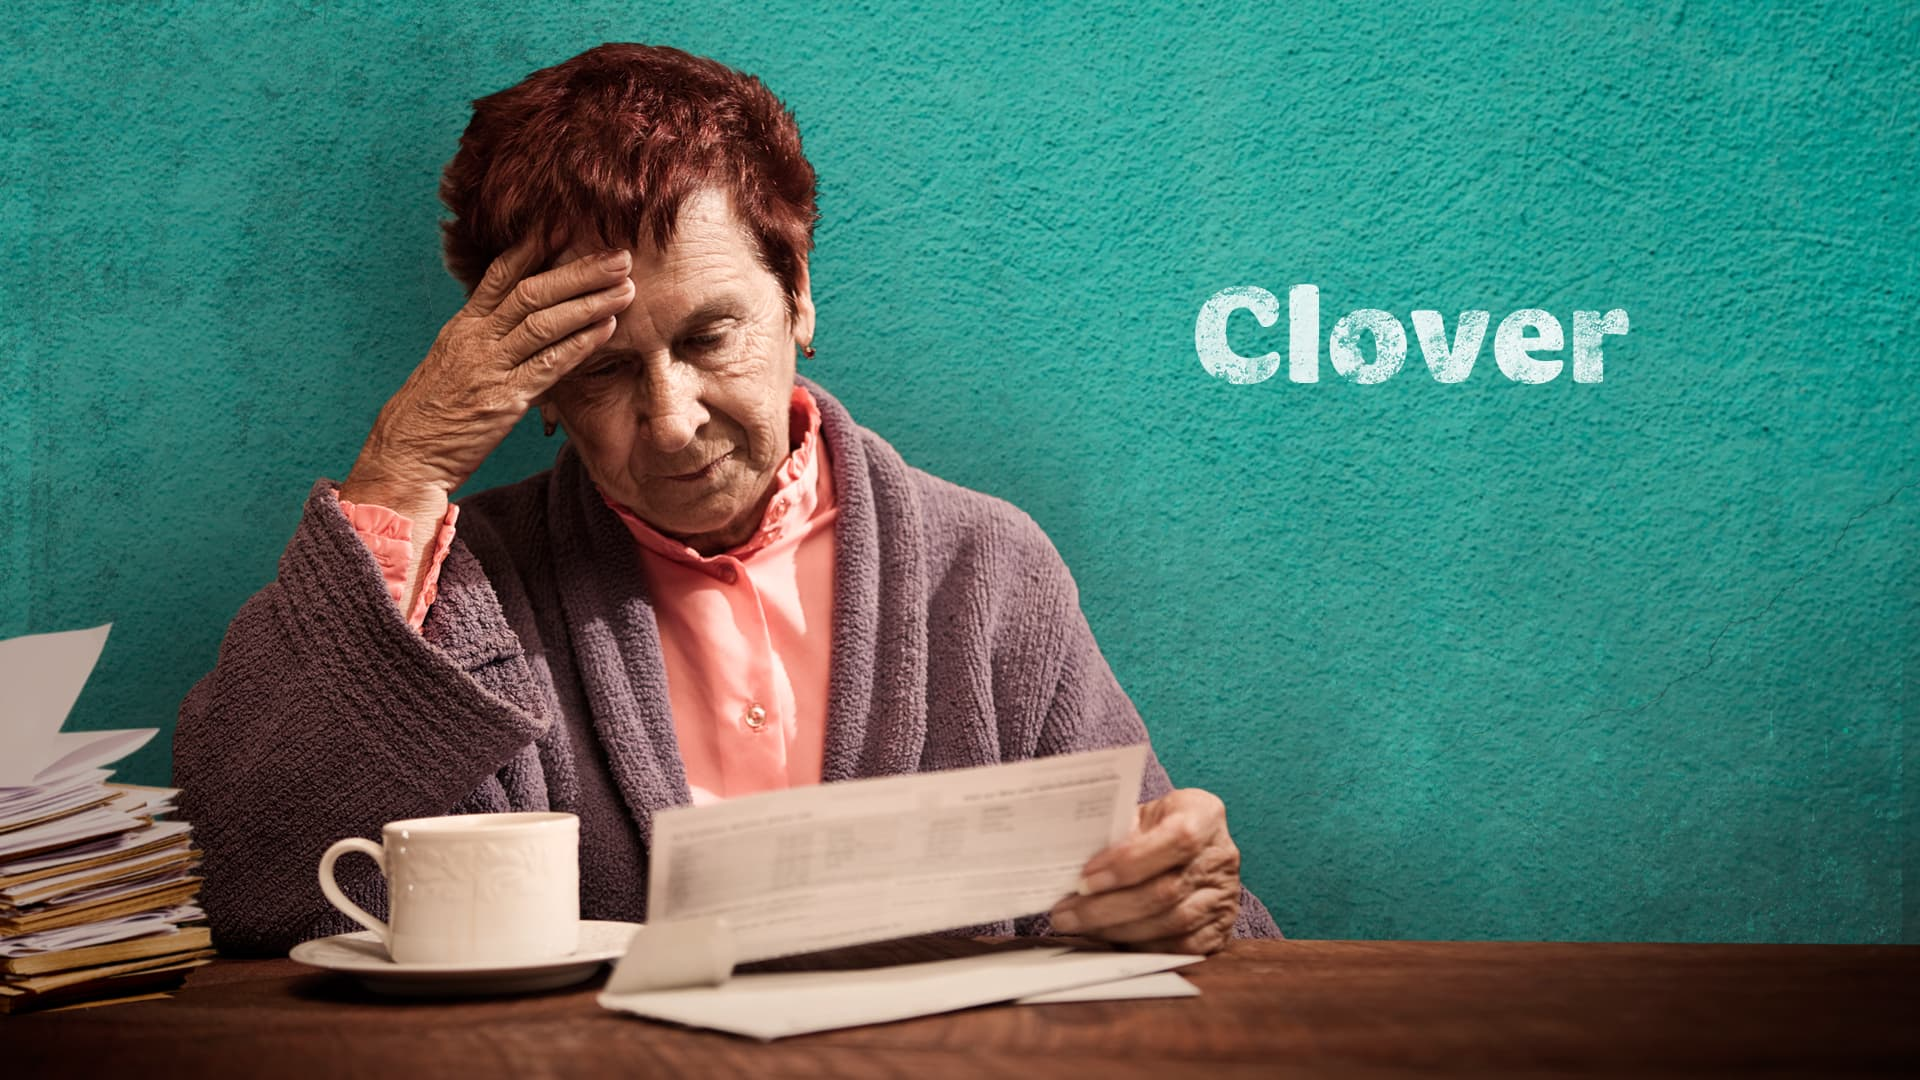 Clover Health Insurance Start Up Angered Customers Missed Financials